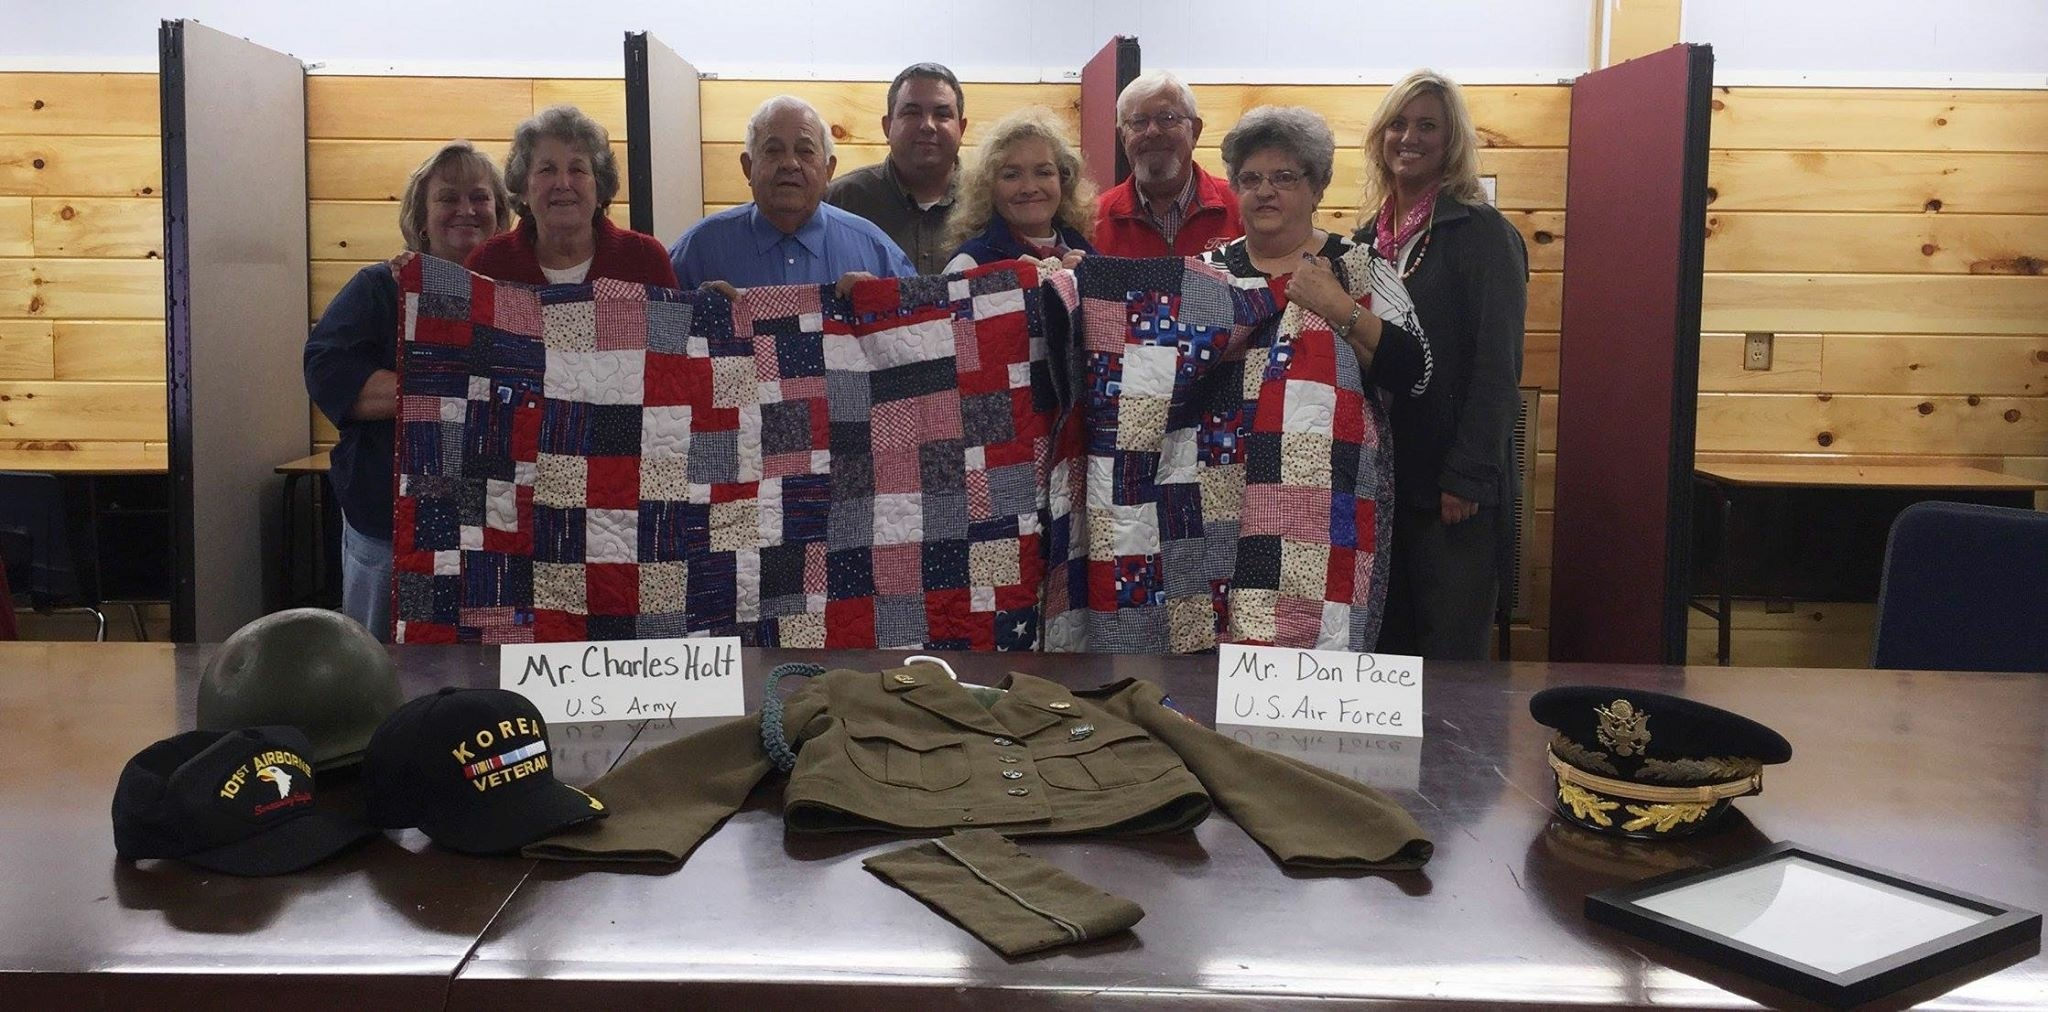 Charles Holt US Army and Don Pace US AirForce. Each veteran was given a hand sewn quilt that the students made. That project was completed by Mrs. Tracy Mitchell and her class